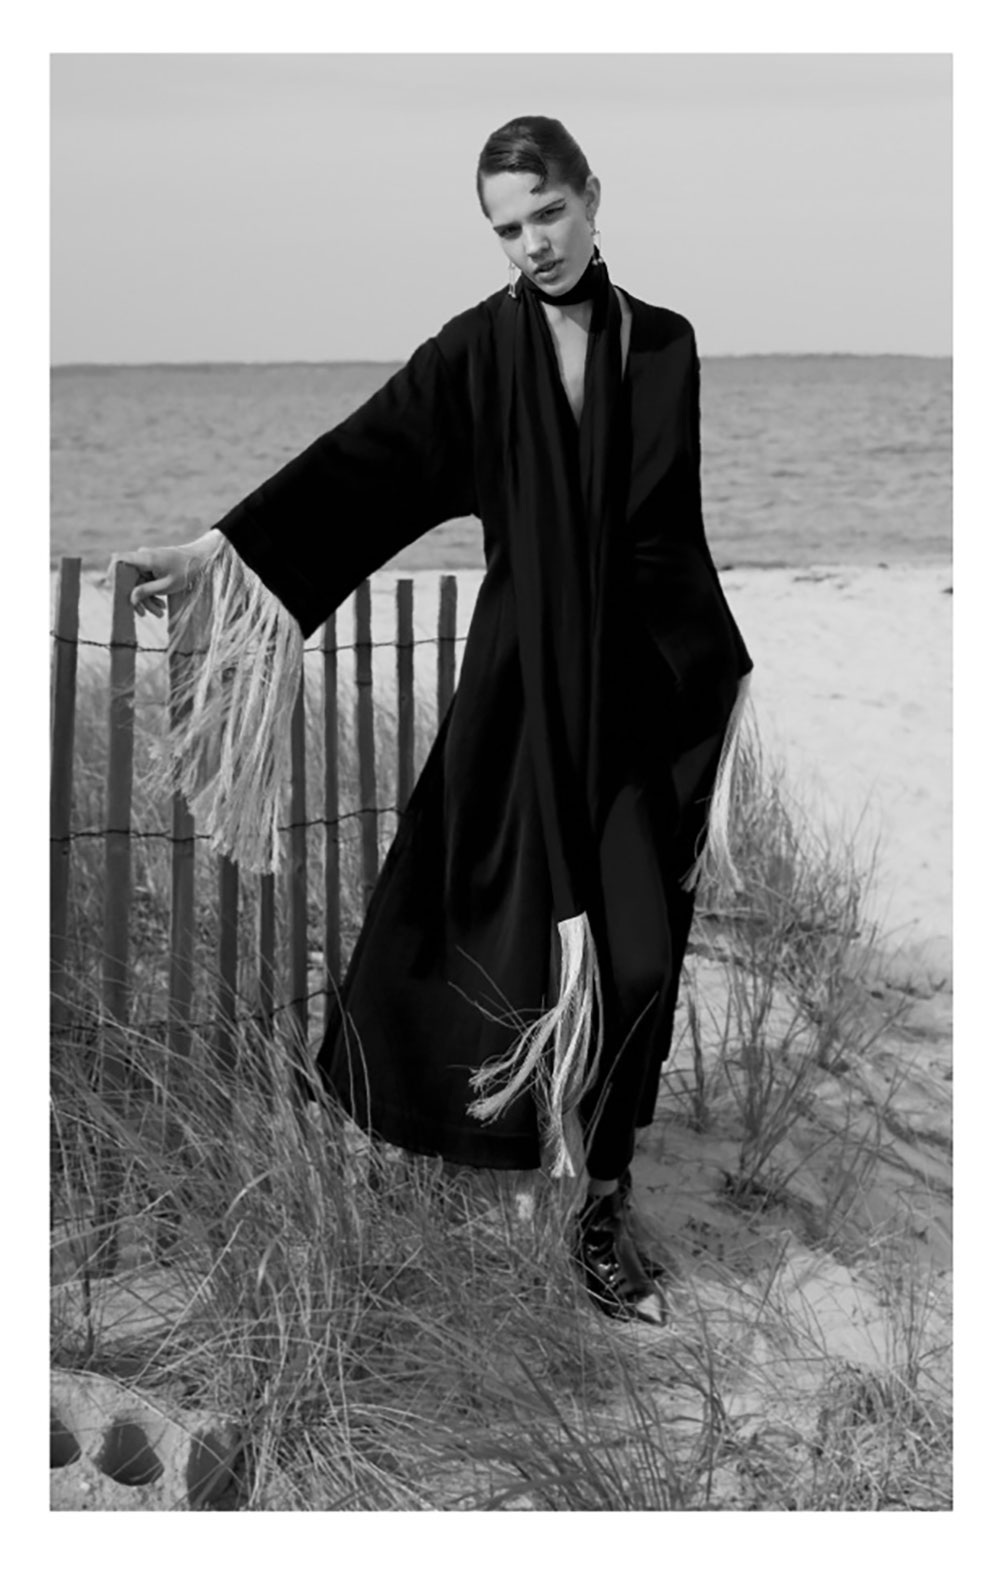 Black and white image of Getter from ONE model management by Jack Grayson for MONROWE magazine